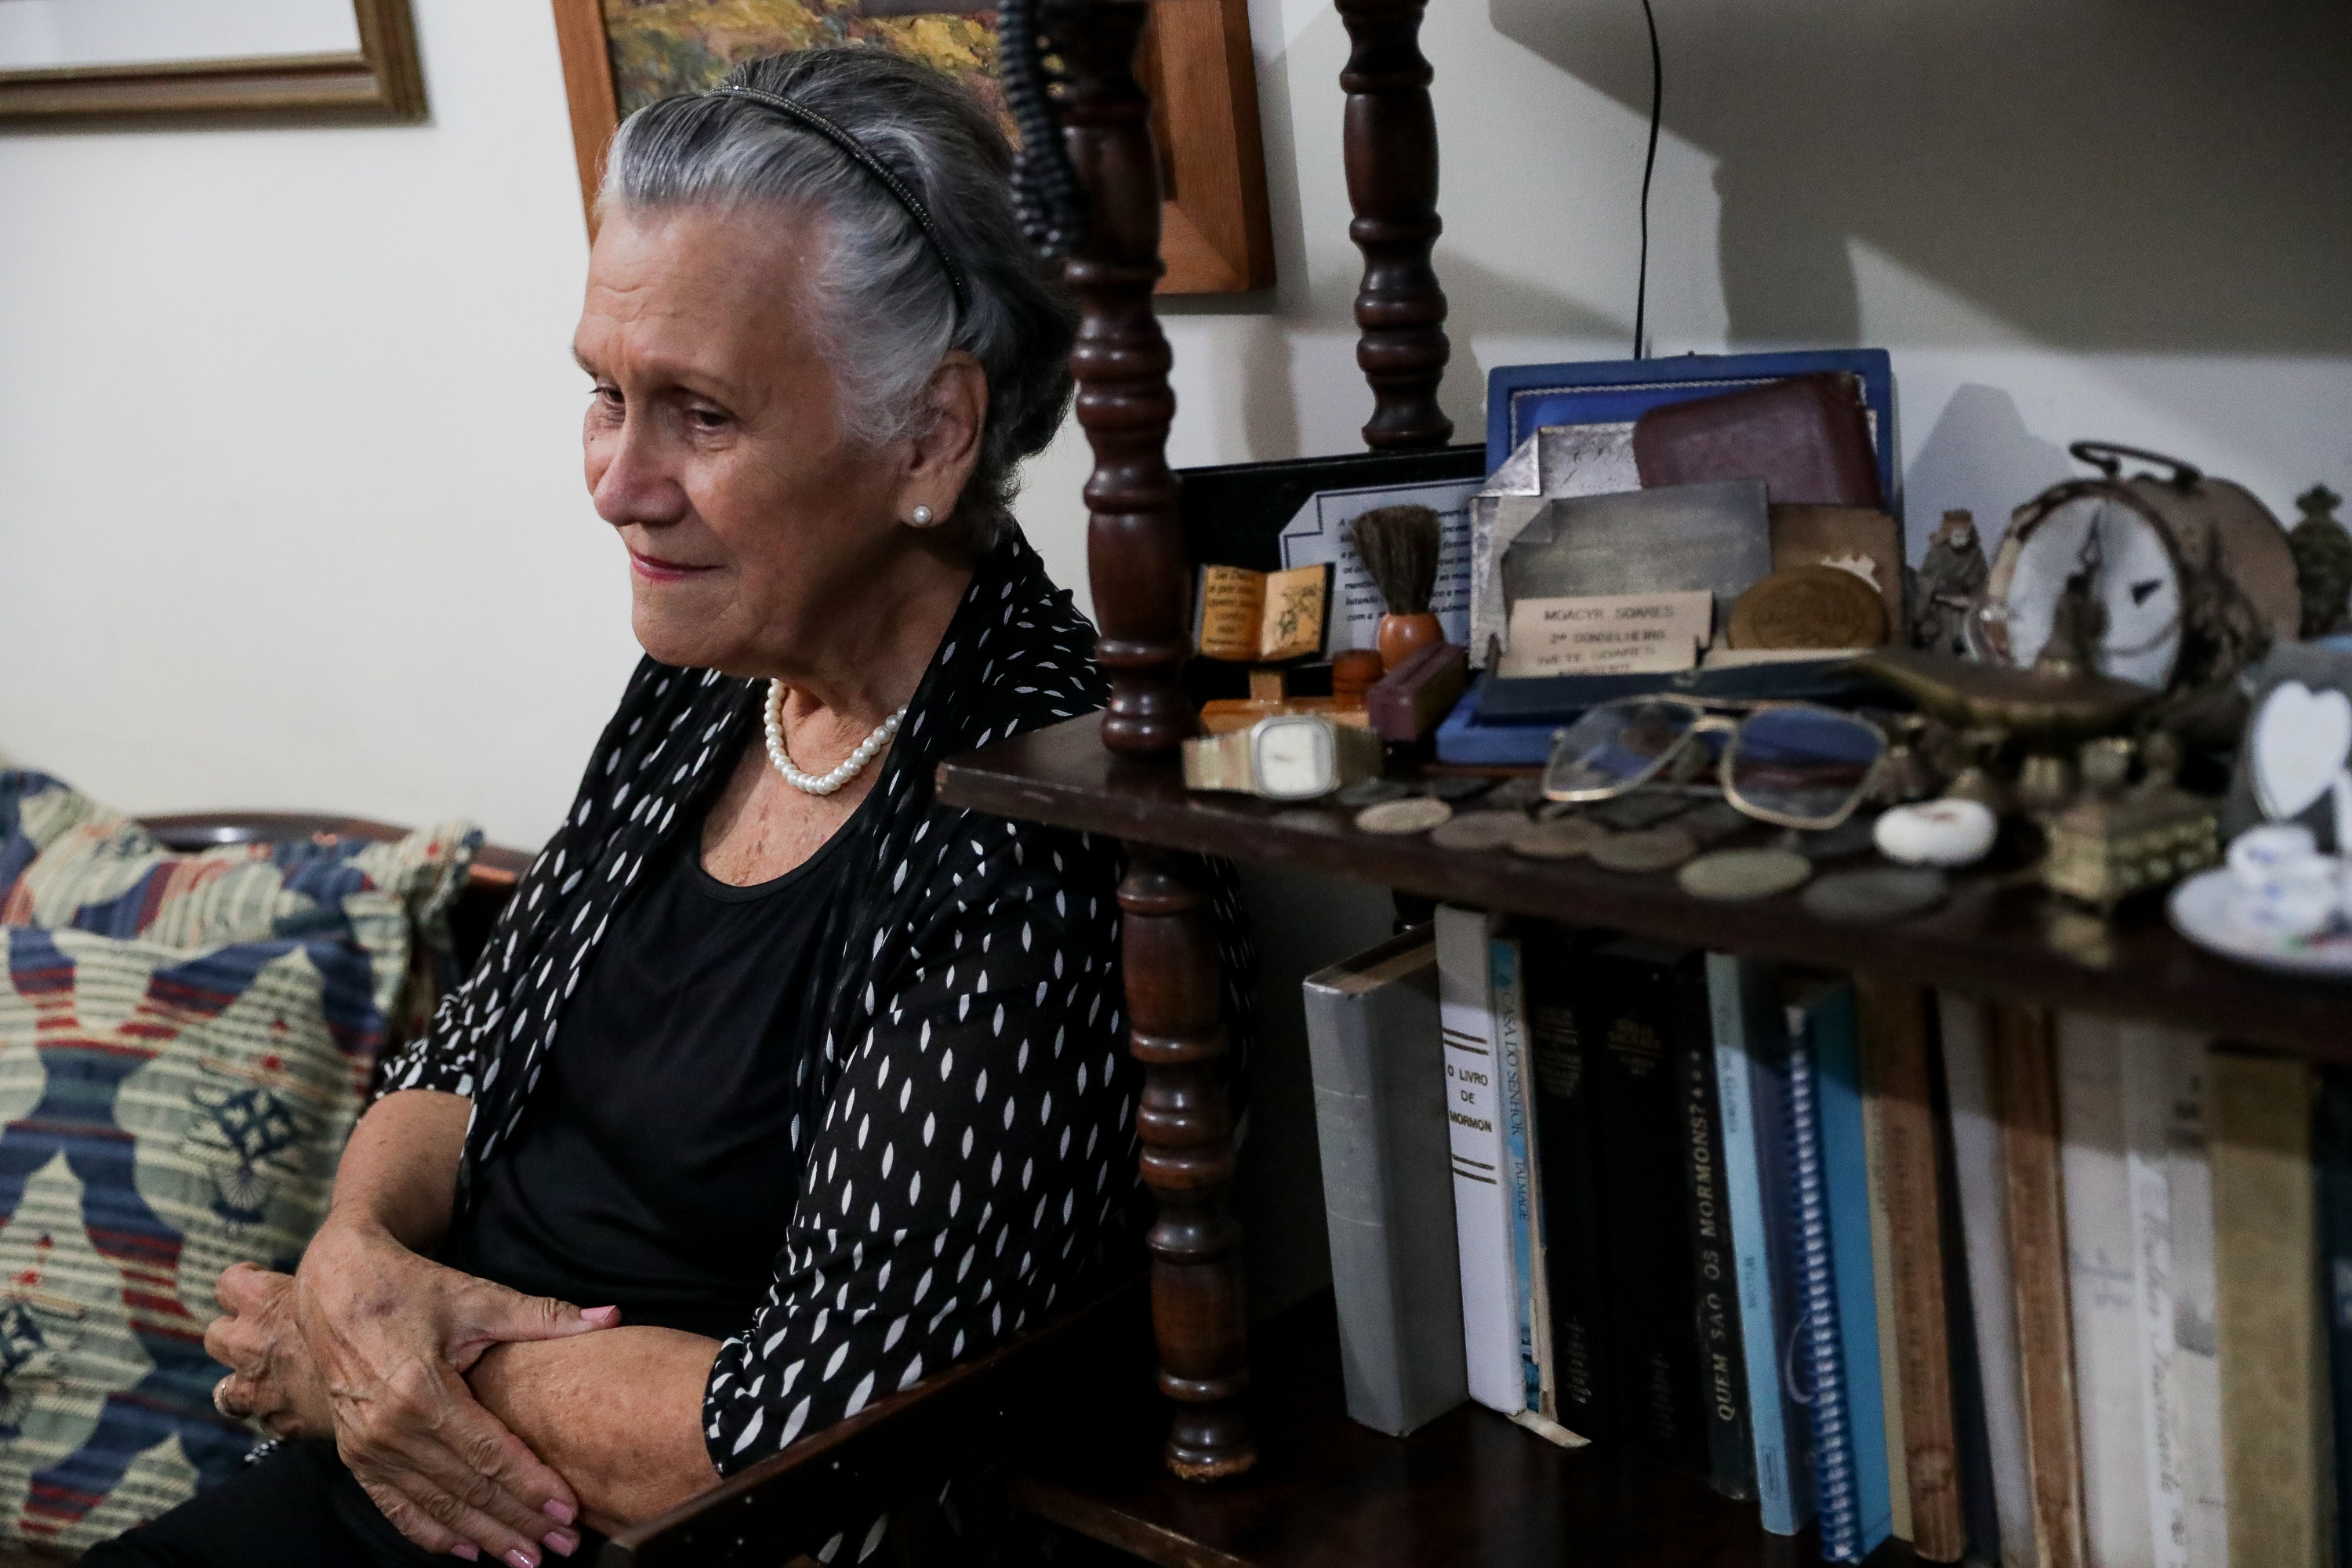 Ivete Sodré Da Motta Soares recalls taking long bus journeys to visit the Sao Paulo temple in her apartment in Recife, Brazil, on Saturday, May 26, 2018.